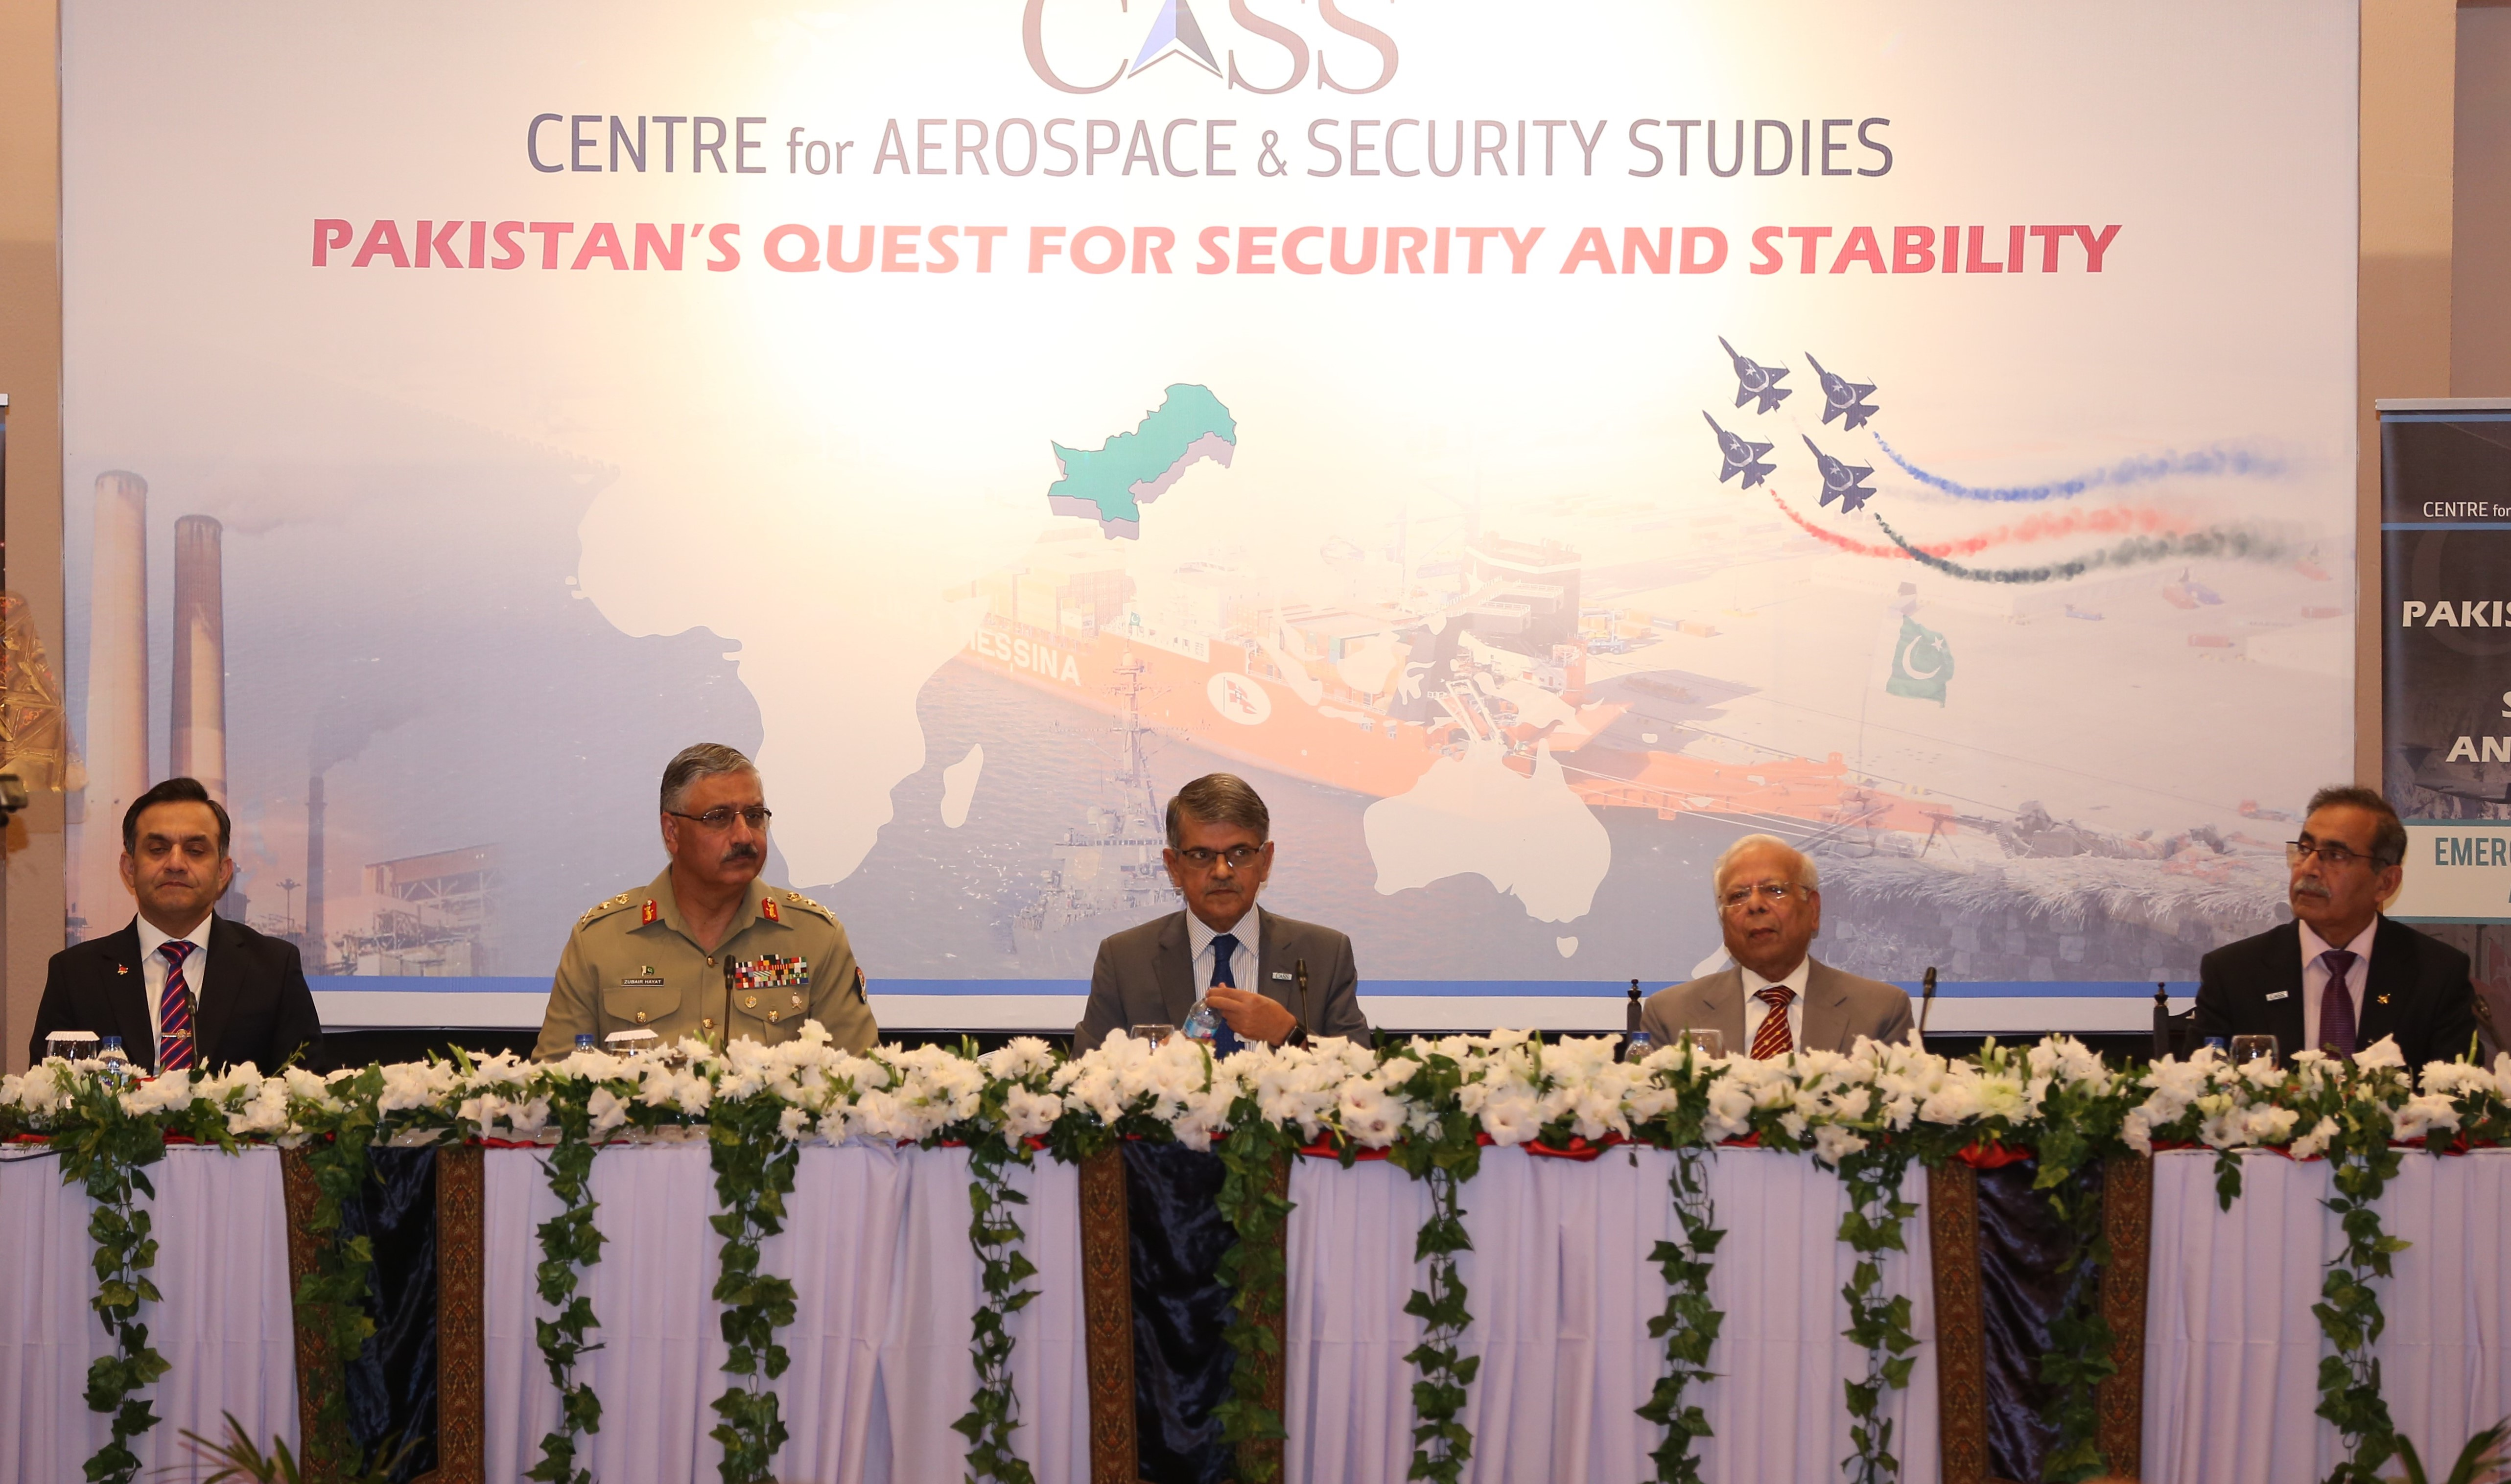 Pakistan's Quest For Security And Stability